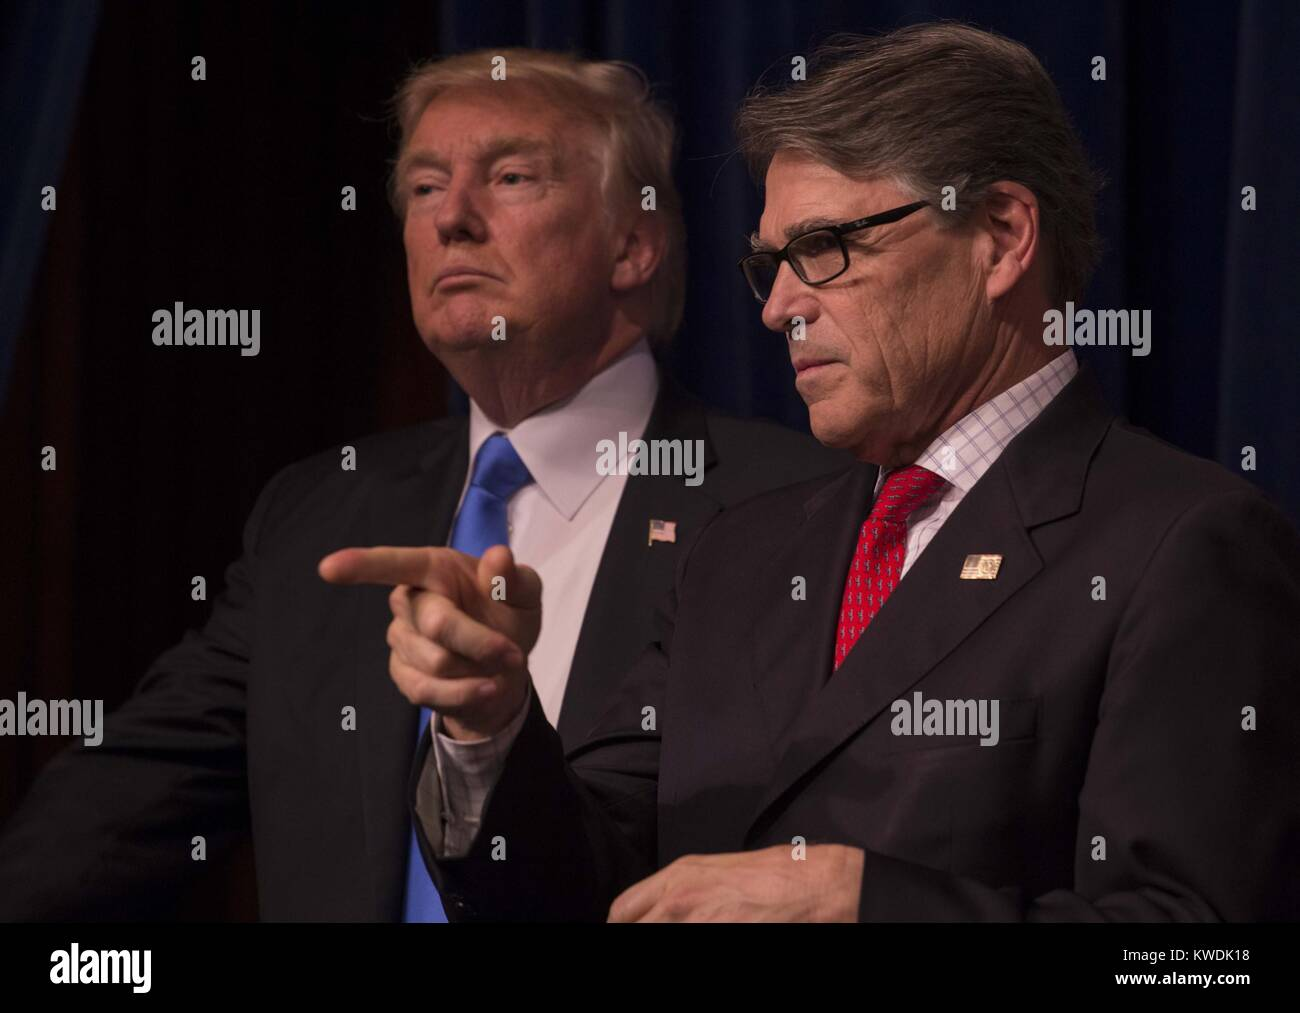 President Donald Trump and Secretary of Energy, Rick Perry, June 29, 2017. At the Unleashing American Energy event Stock Photo